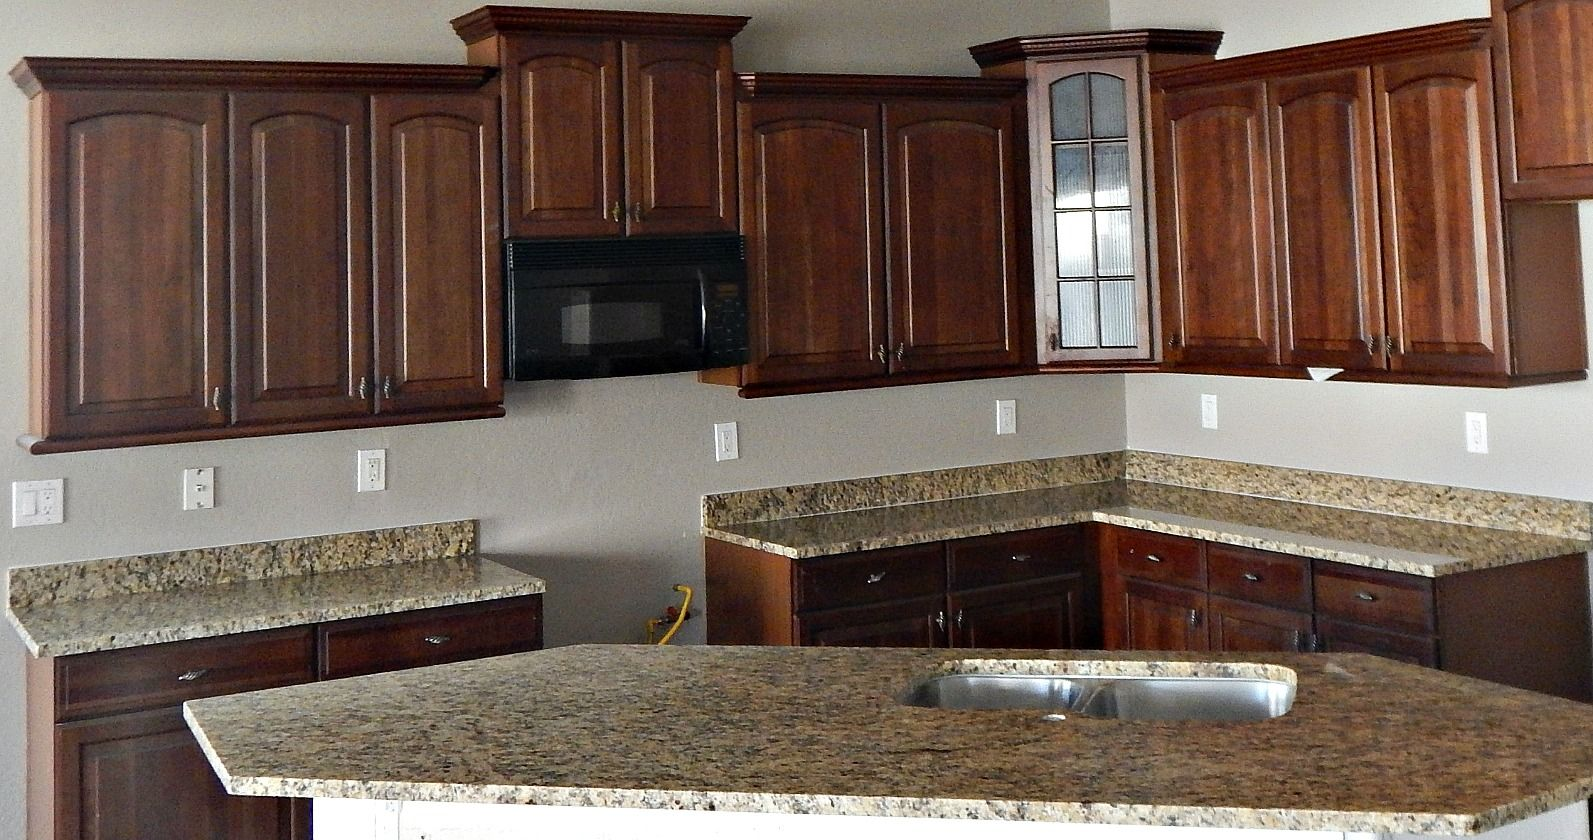 St Cecelia Granite Countertop Remodel With Flat Polish Edge And Under Mount  Stainless Steel Sinks At